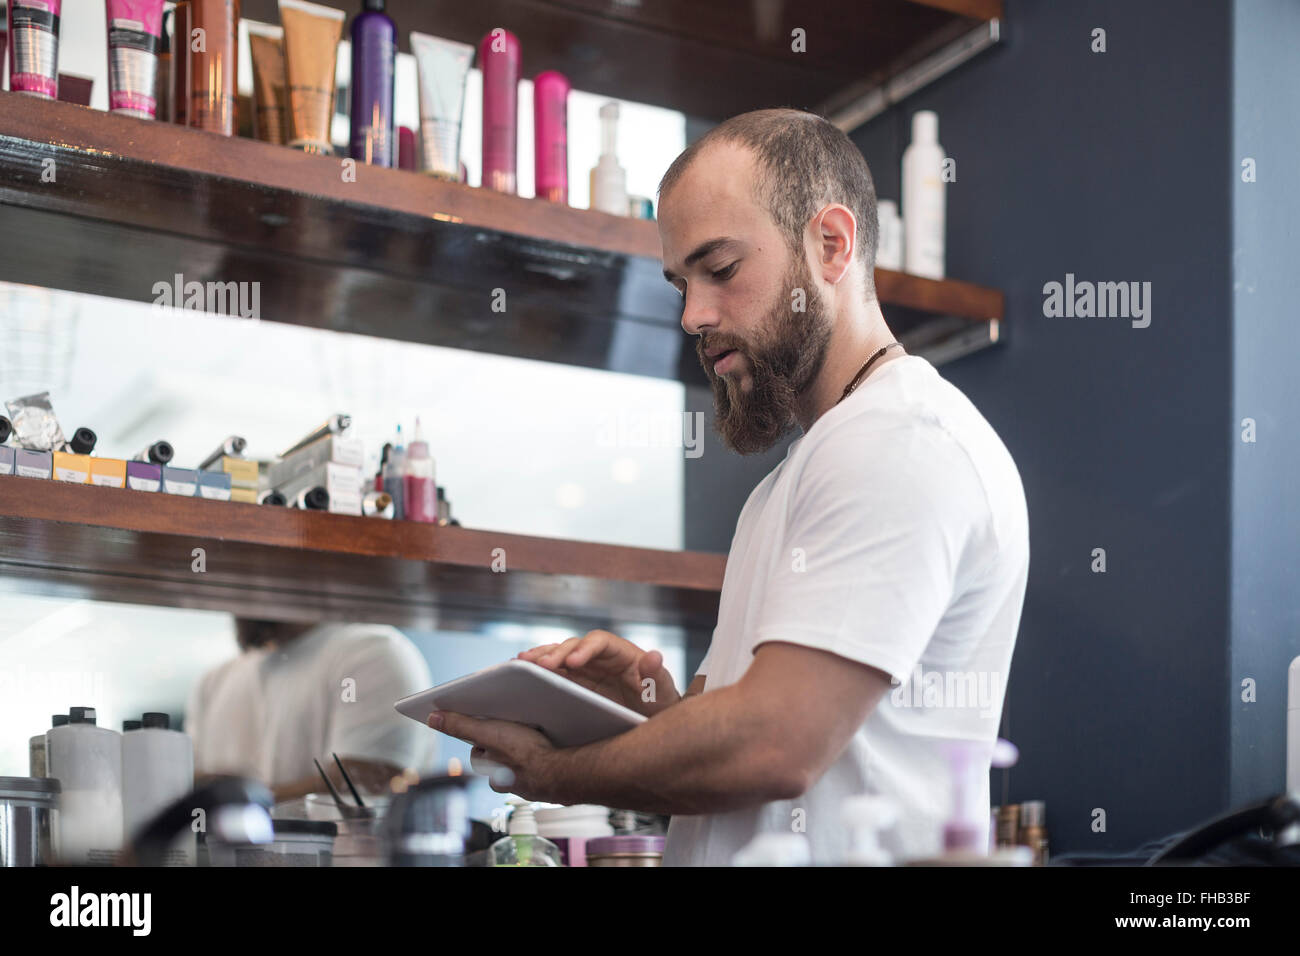 Barber Shop Inventar mit digital-Tablette zu tun Stockbild